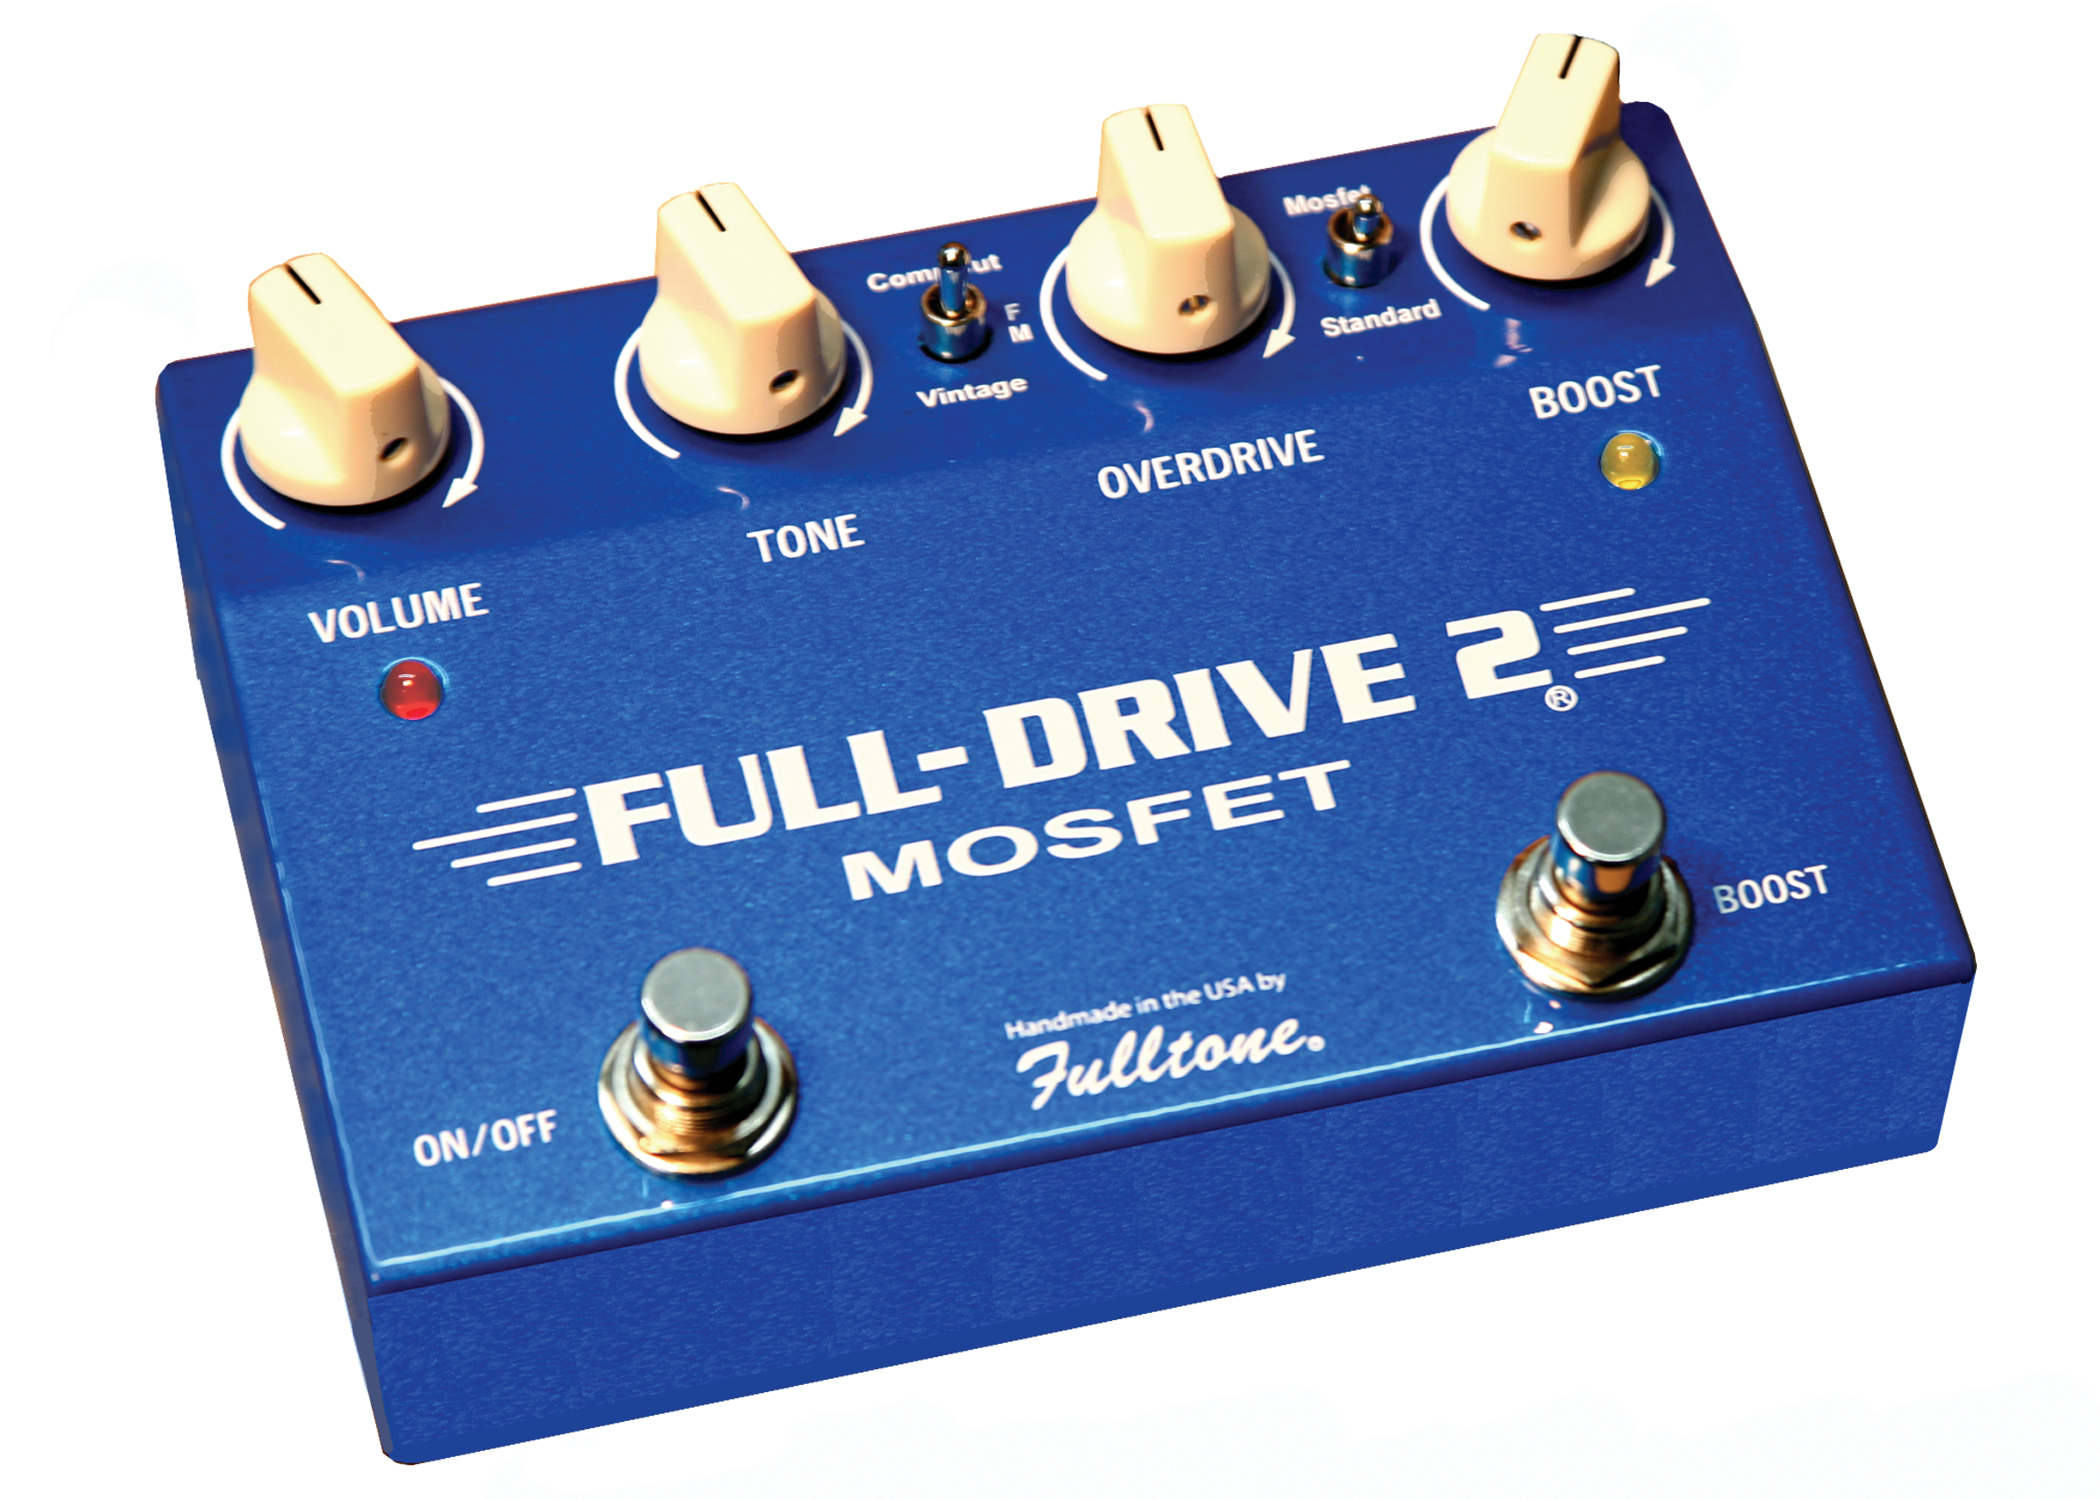 fulltone musical products inc pedals full drive2 mosfet